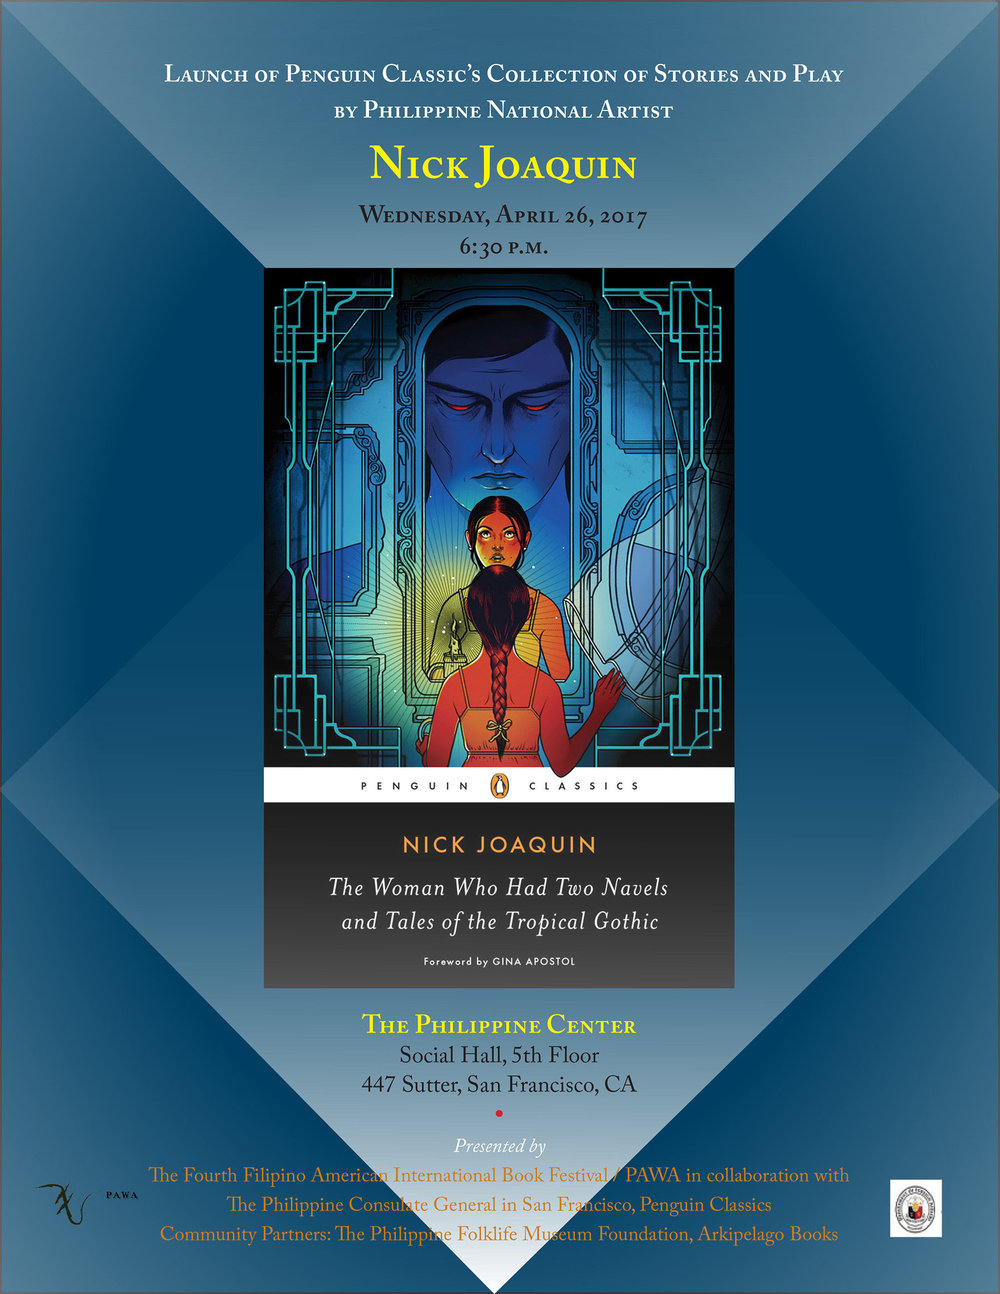 conflict of the woman who had two navels The woman who had two navels by nick joaquin description: this novel by joaquin is a literary assessment of the influence of the past to the time encompassing events in the philippines after world war ii, an examination of an assortment of legacy and heritage and the questions of how can an individual exercise free will and how to deal with the.